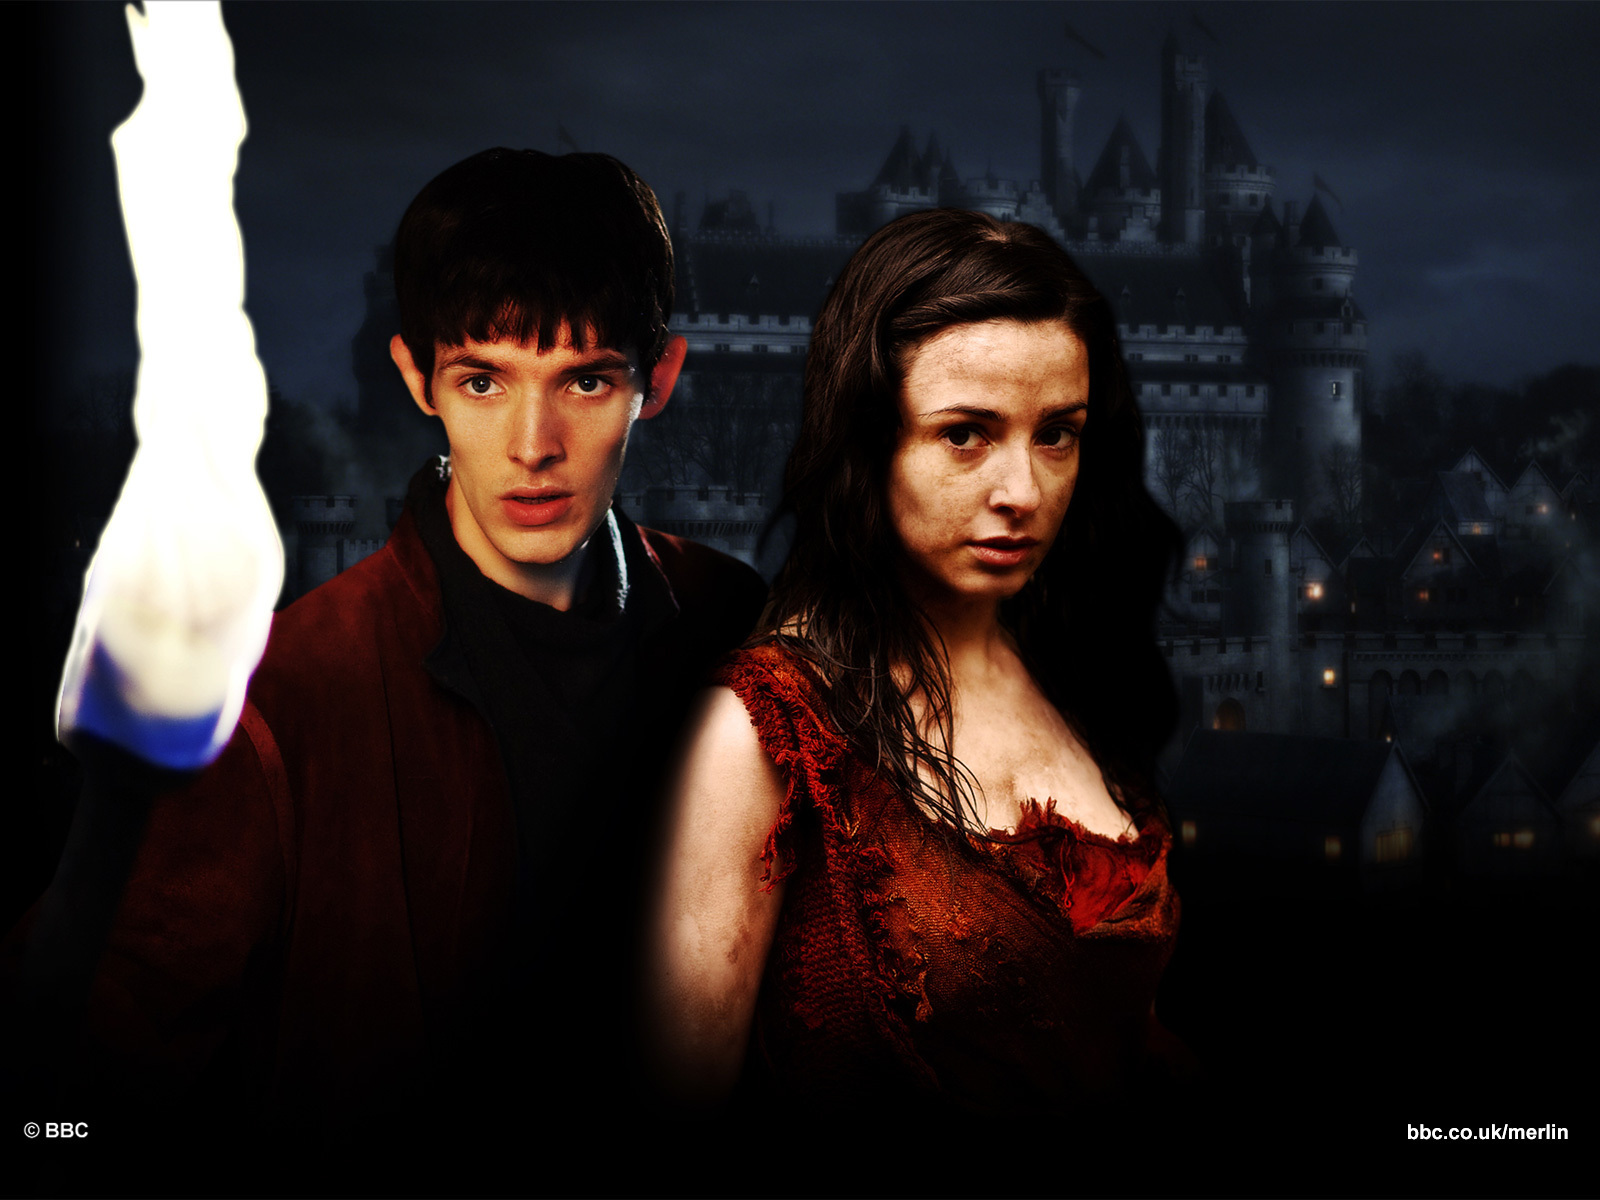 merlin on bbc images bbc original hd wallpaper and